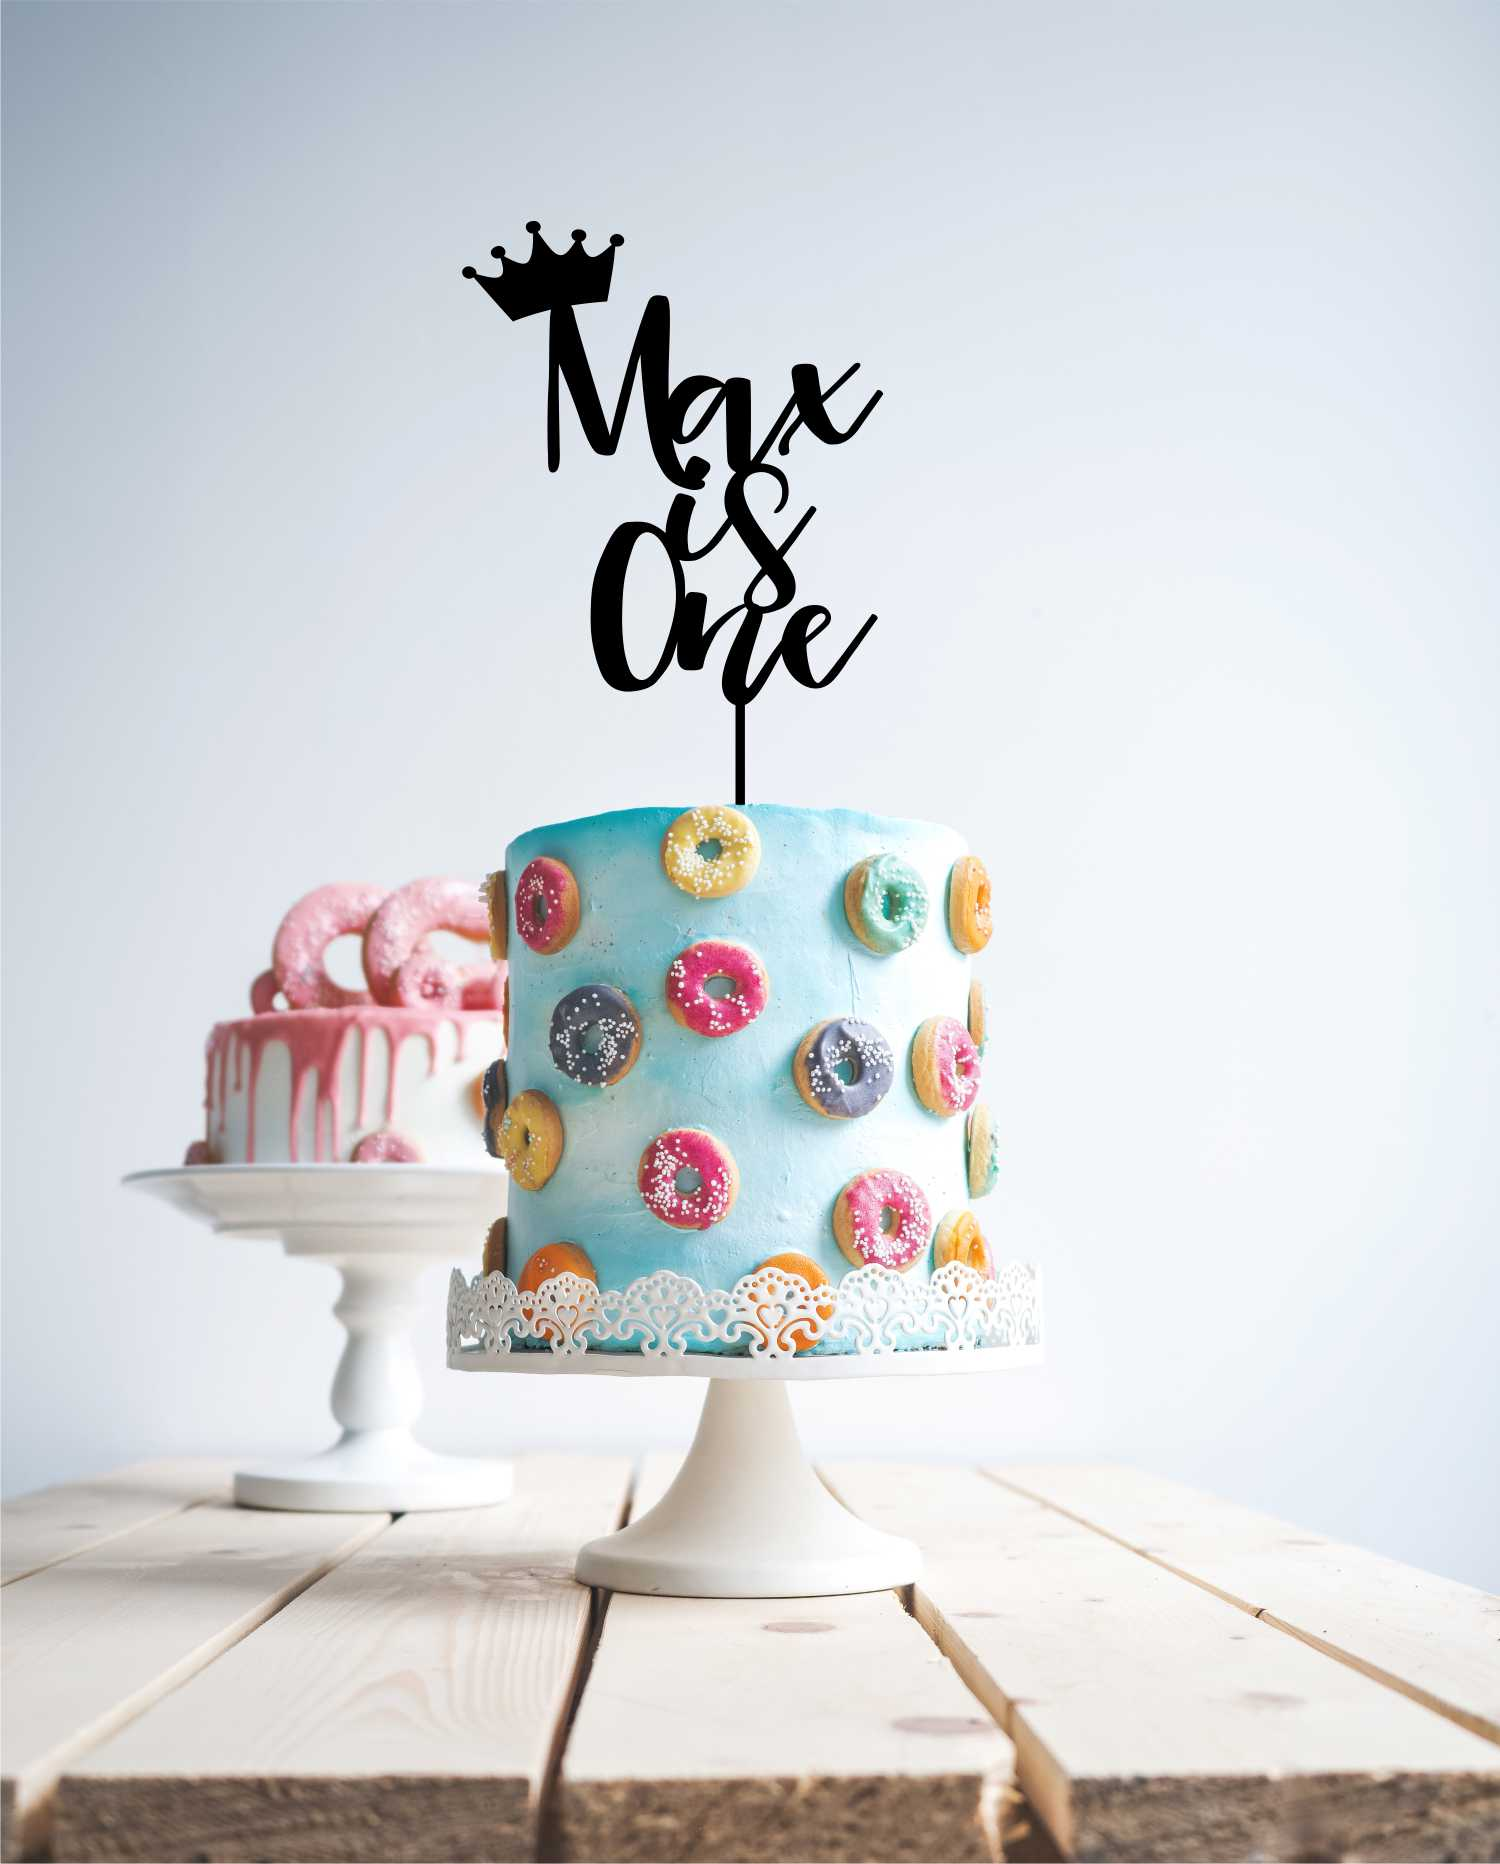 Where the wild things are - One cake topper